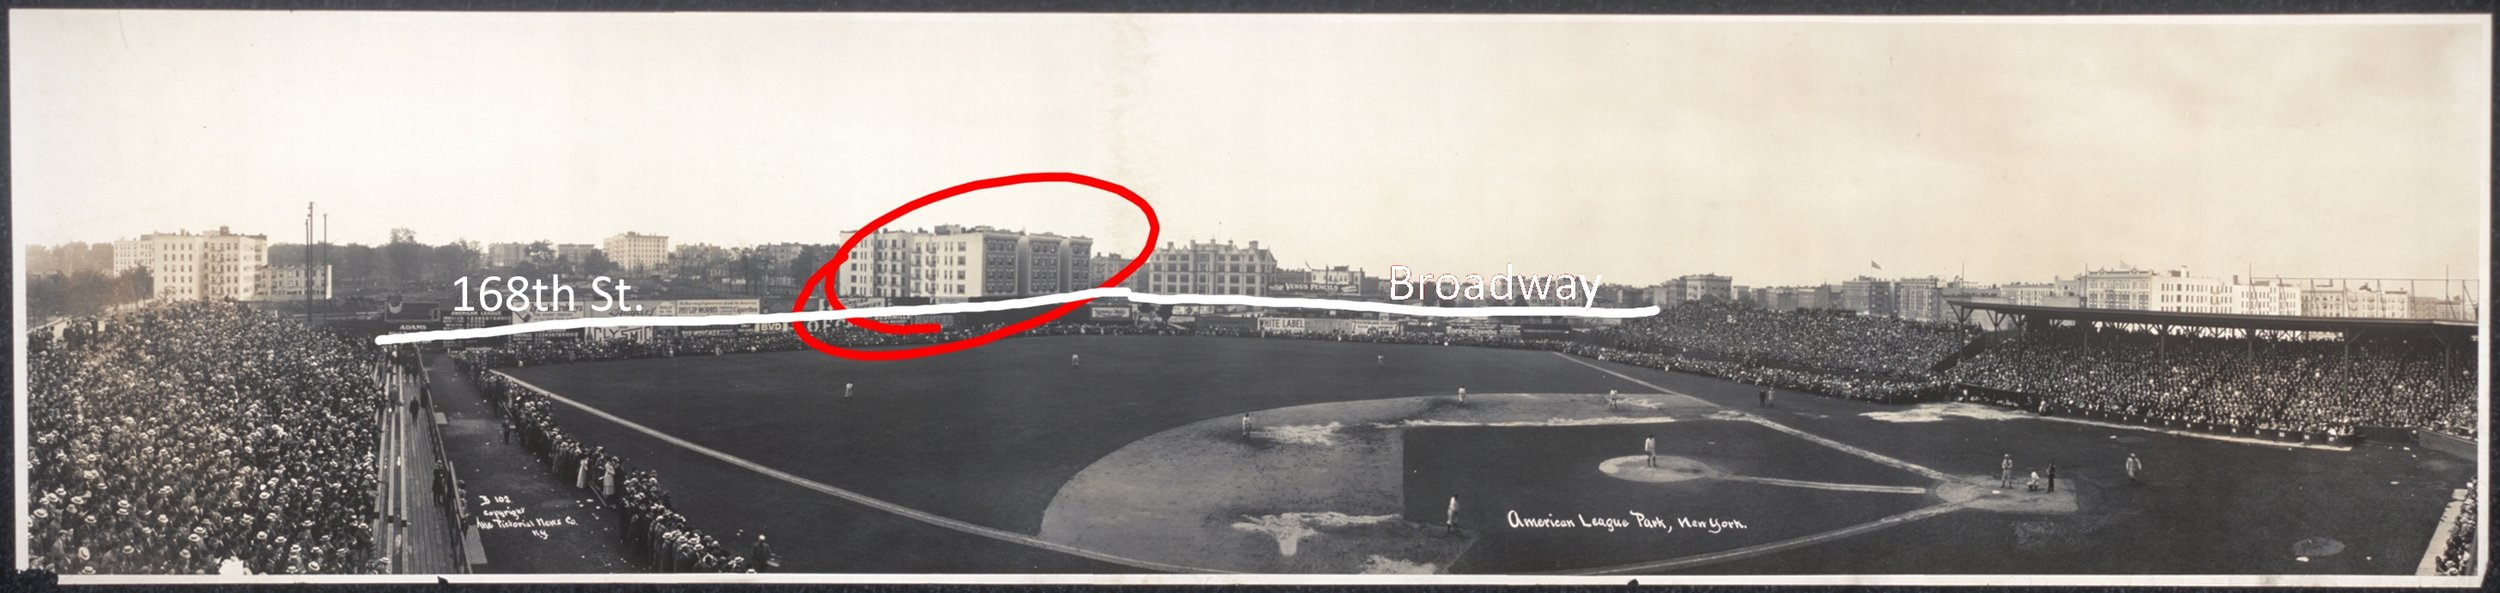 The panoramic picture of Hilltop Park showing the positions of Broadway and 168th Street, based on the position of 601-607 W 168th Street.